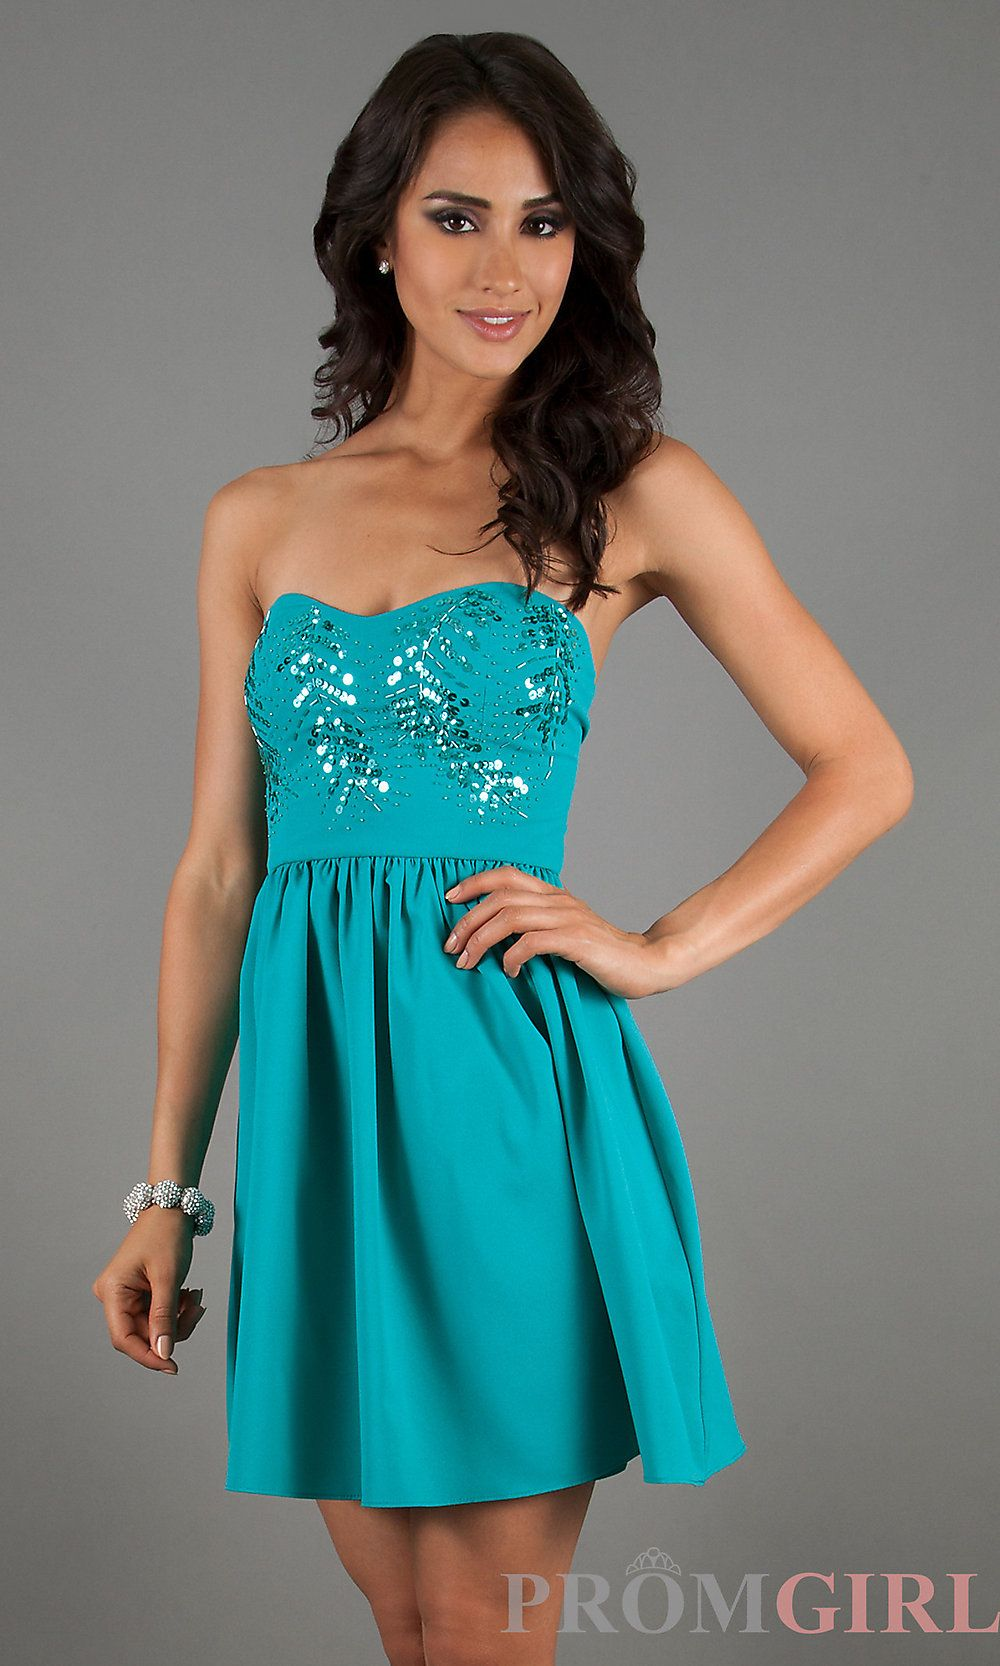 Strapless short teal prom dress short sequin dress promgirl